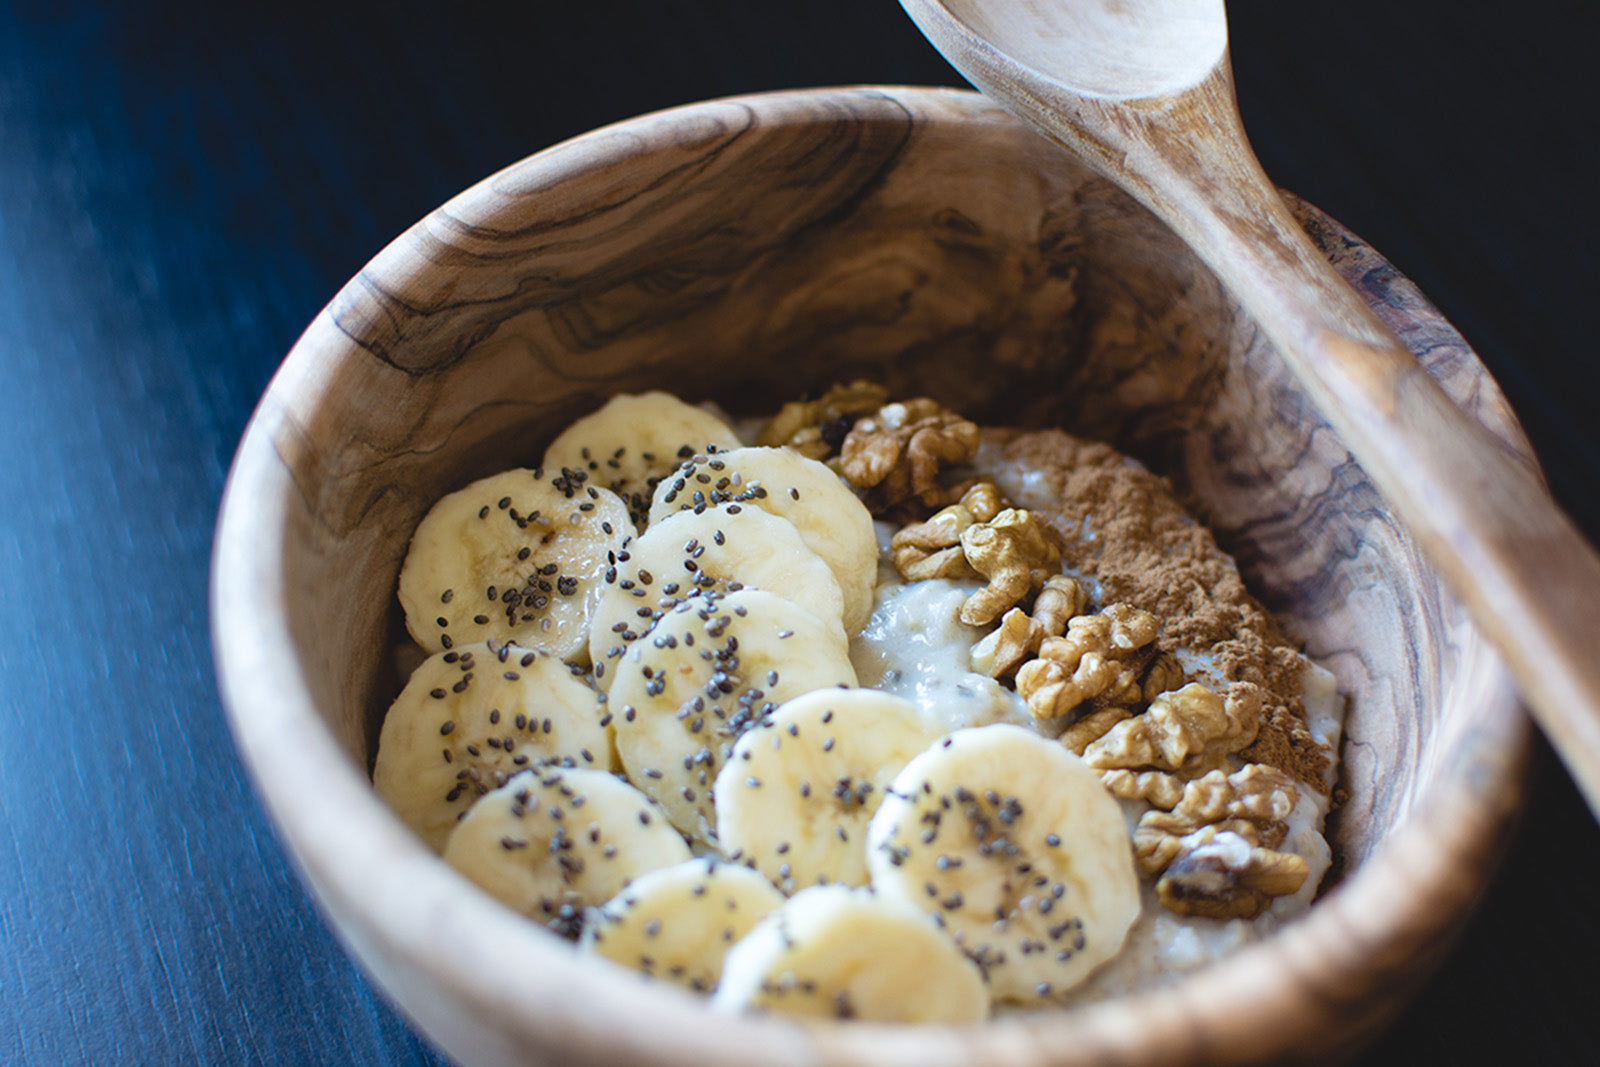 Supercharge your porridge with four simple ingredients